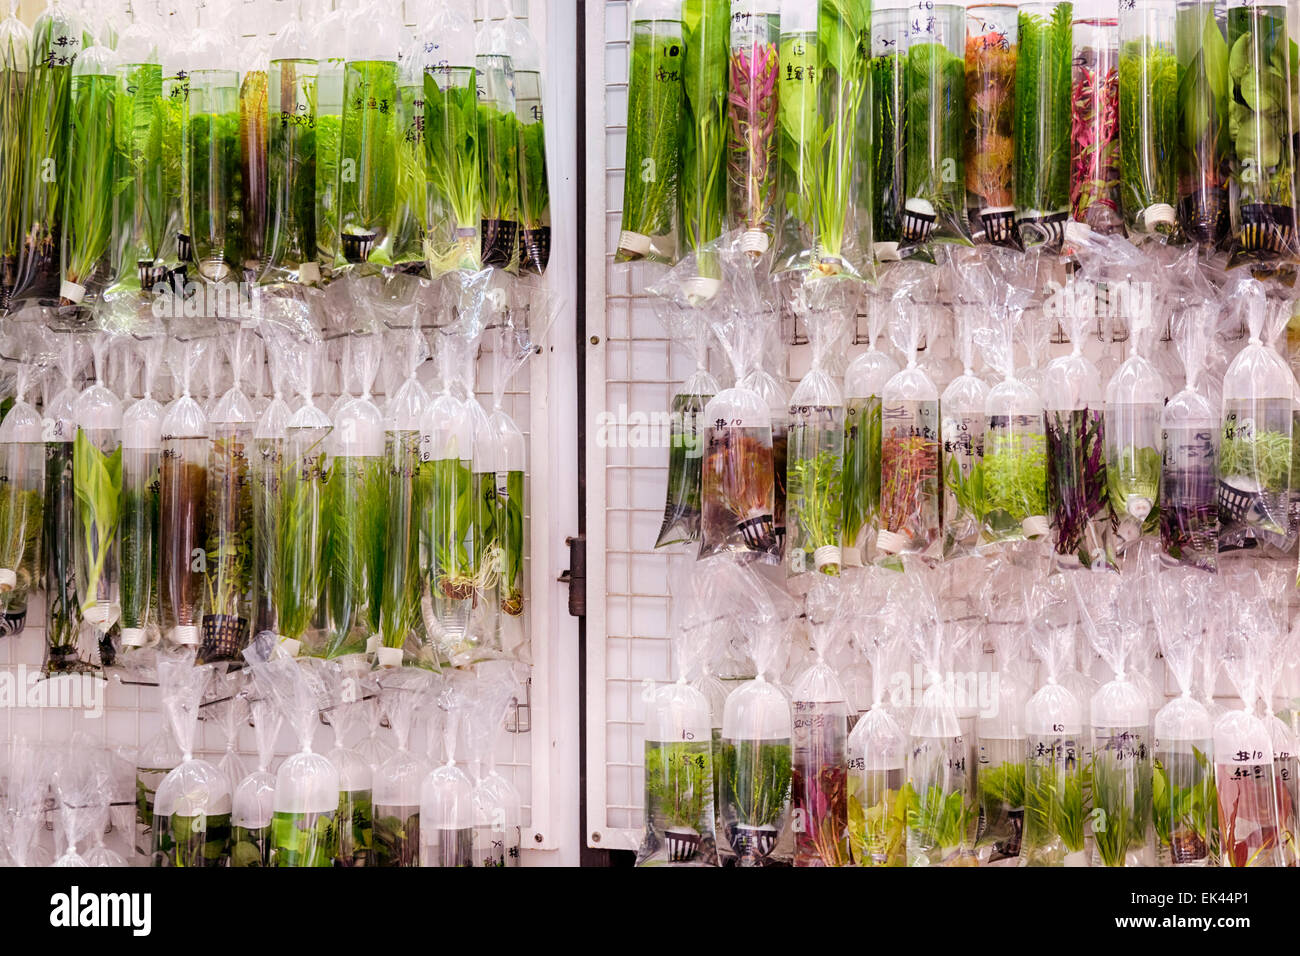 Aquarium plants displayed in plastic bags for sale in the Goldfish market in Mong Kok, Hong Kong. - Stock Image